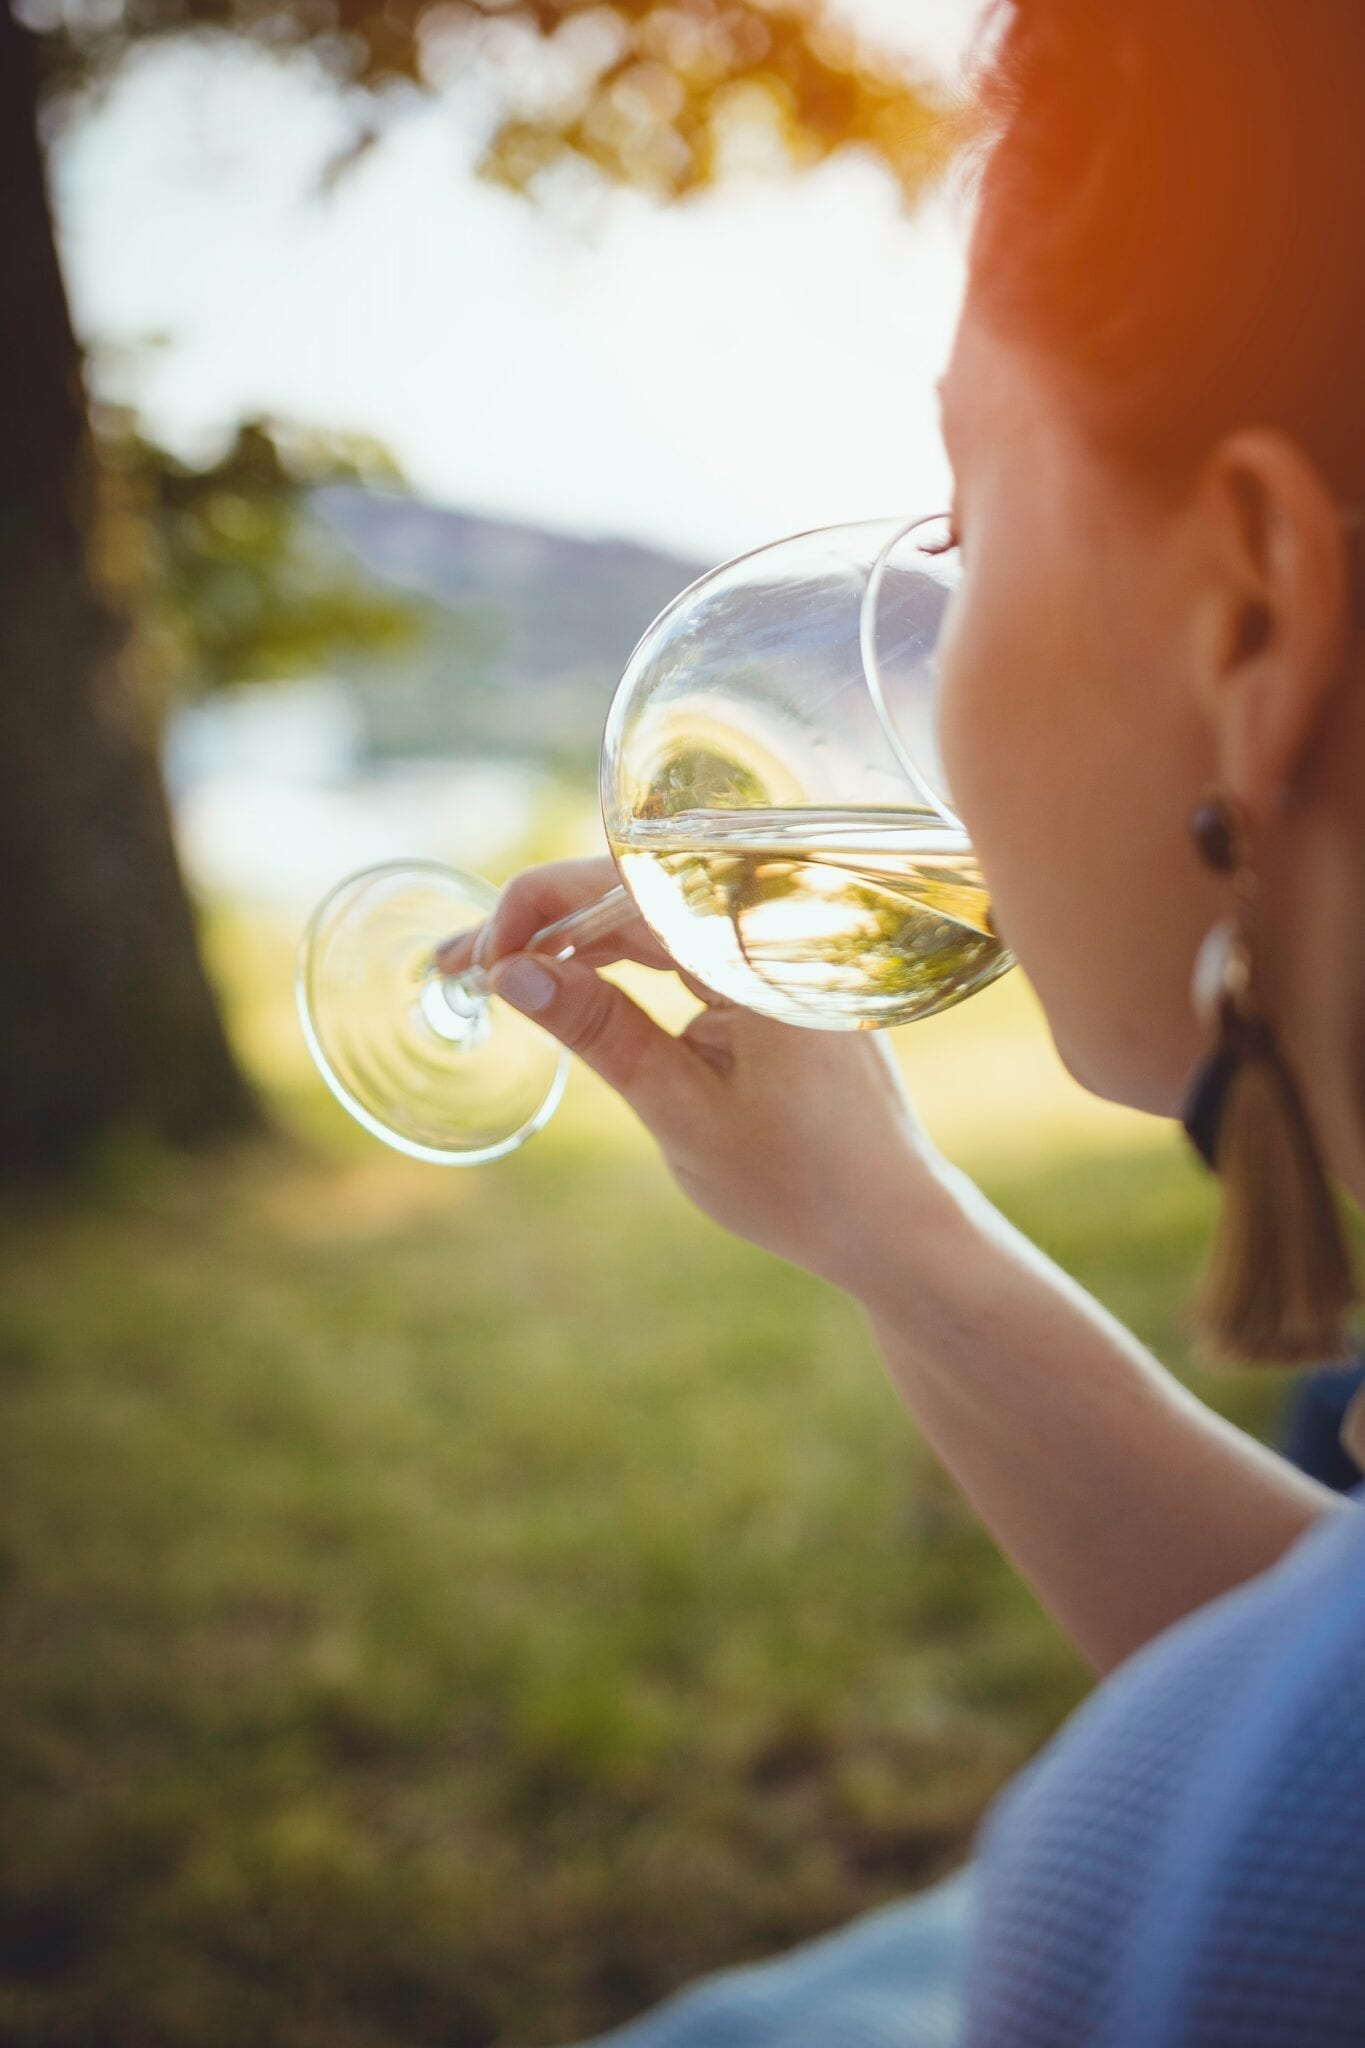 Sniffing wine - photo by Ales Me, Unsplahs